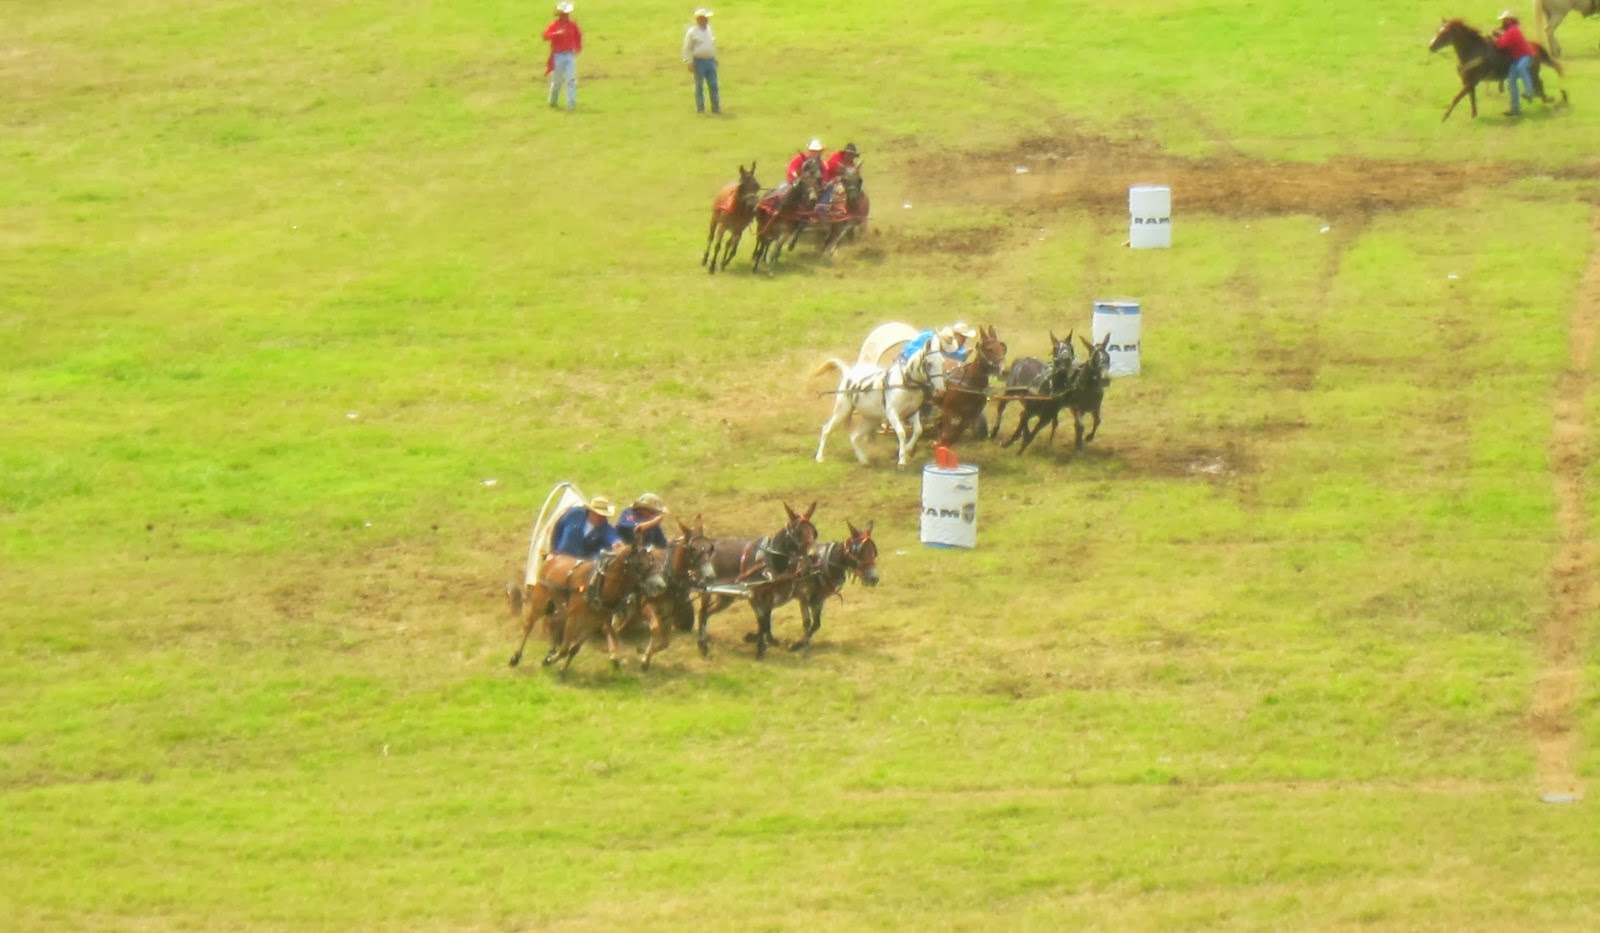 Expeditions By Tricia National Championship Chuckwagon Races